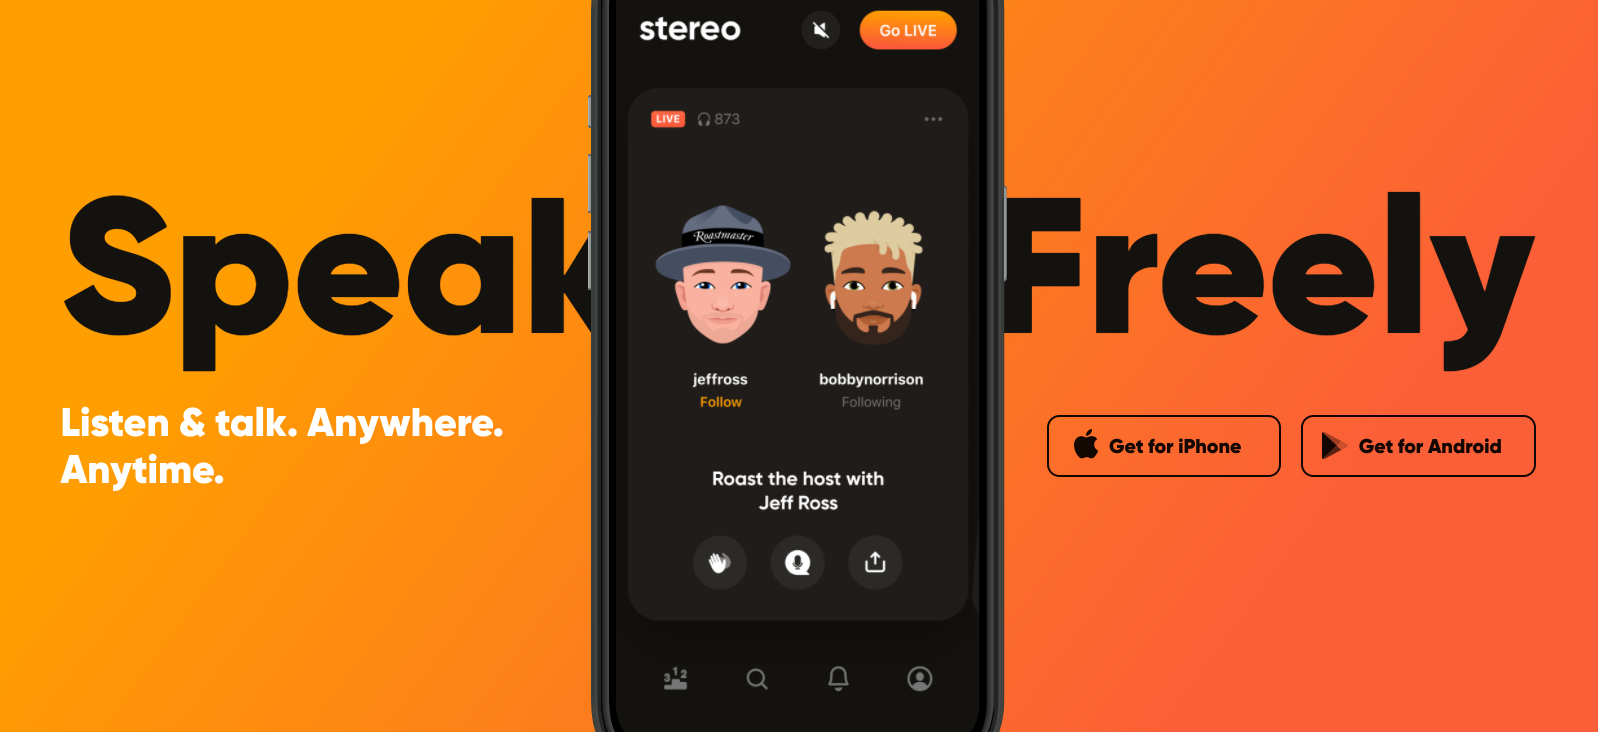 Andrey Andreev Backs Audio-Only Social App 'Stereo'